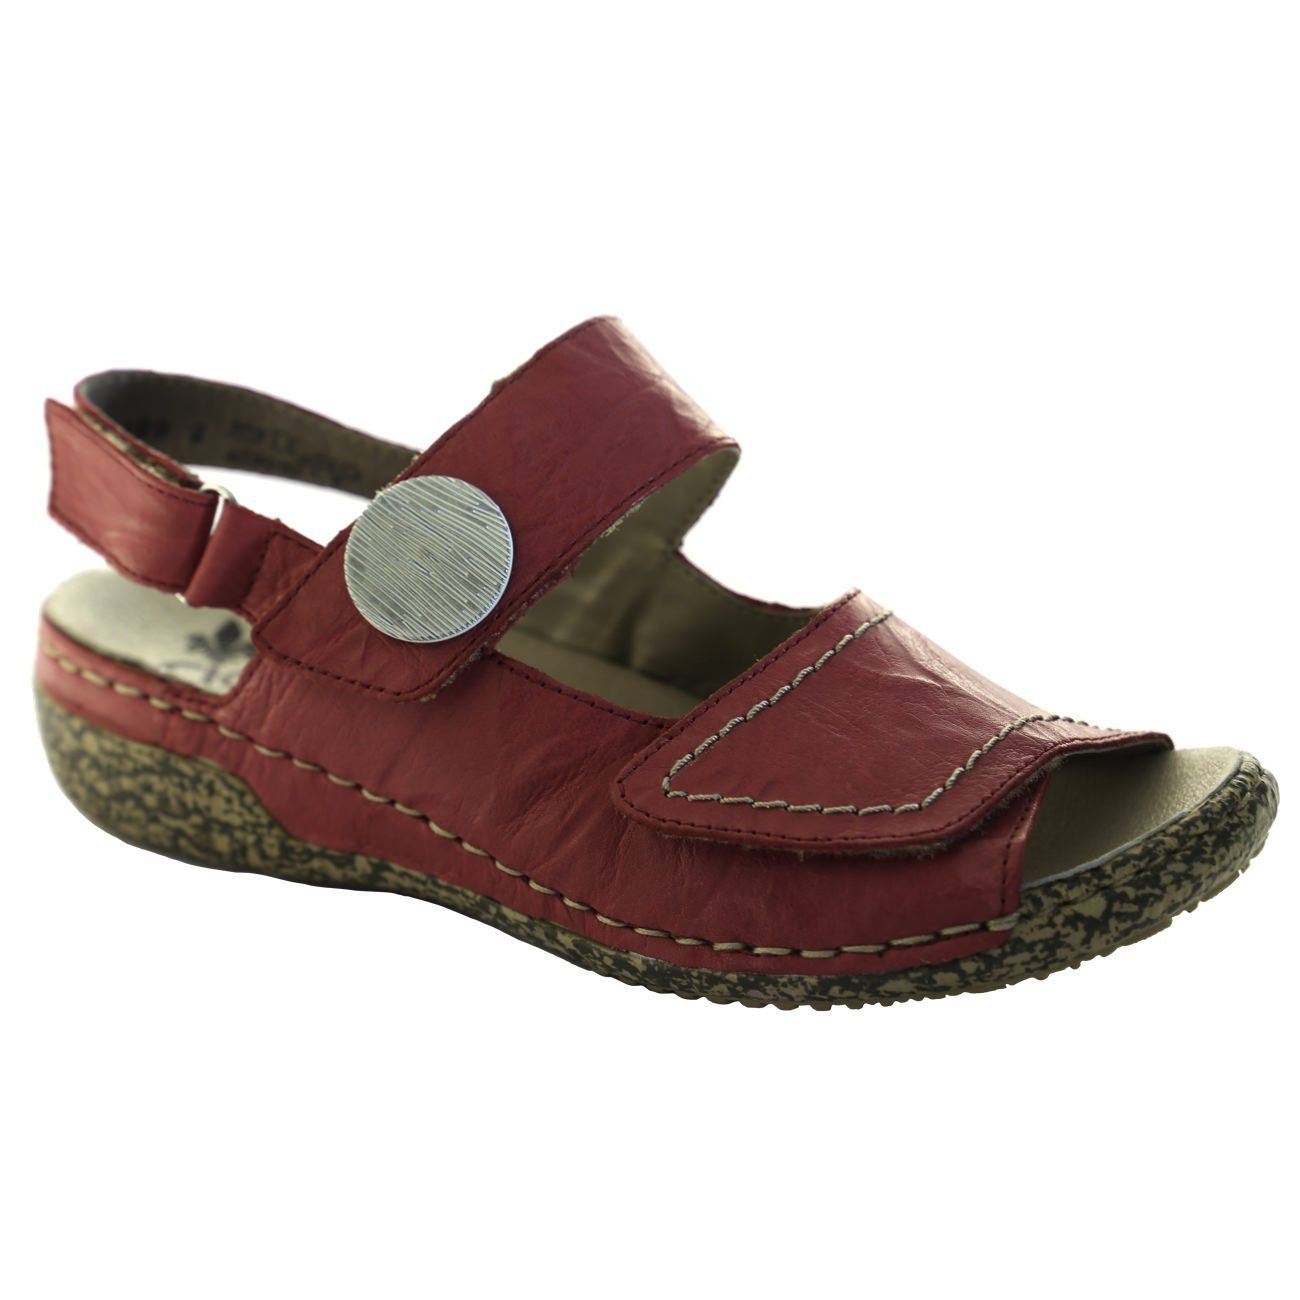 Rieker Antistress, V7272_33, Sandal, Women, Leather Sandals Rieker Antistress Rosso 36